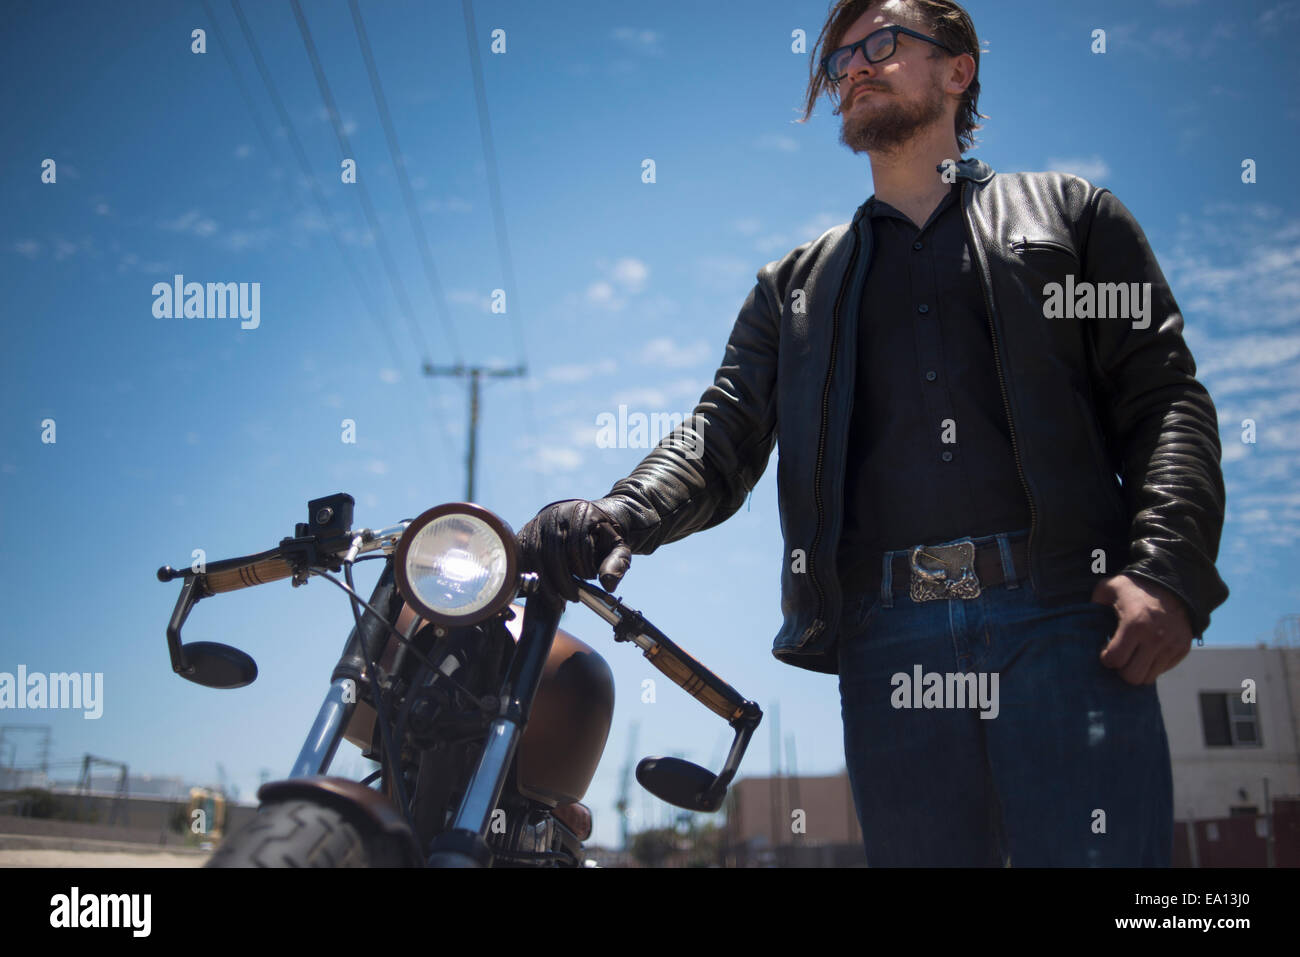 Low angled portrait of male hipster motorcyclist - Stock Image